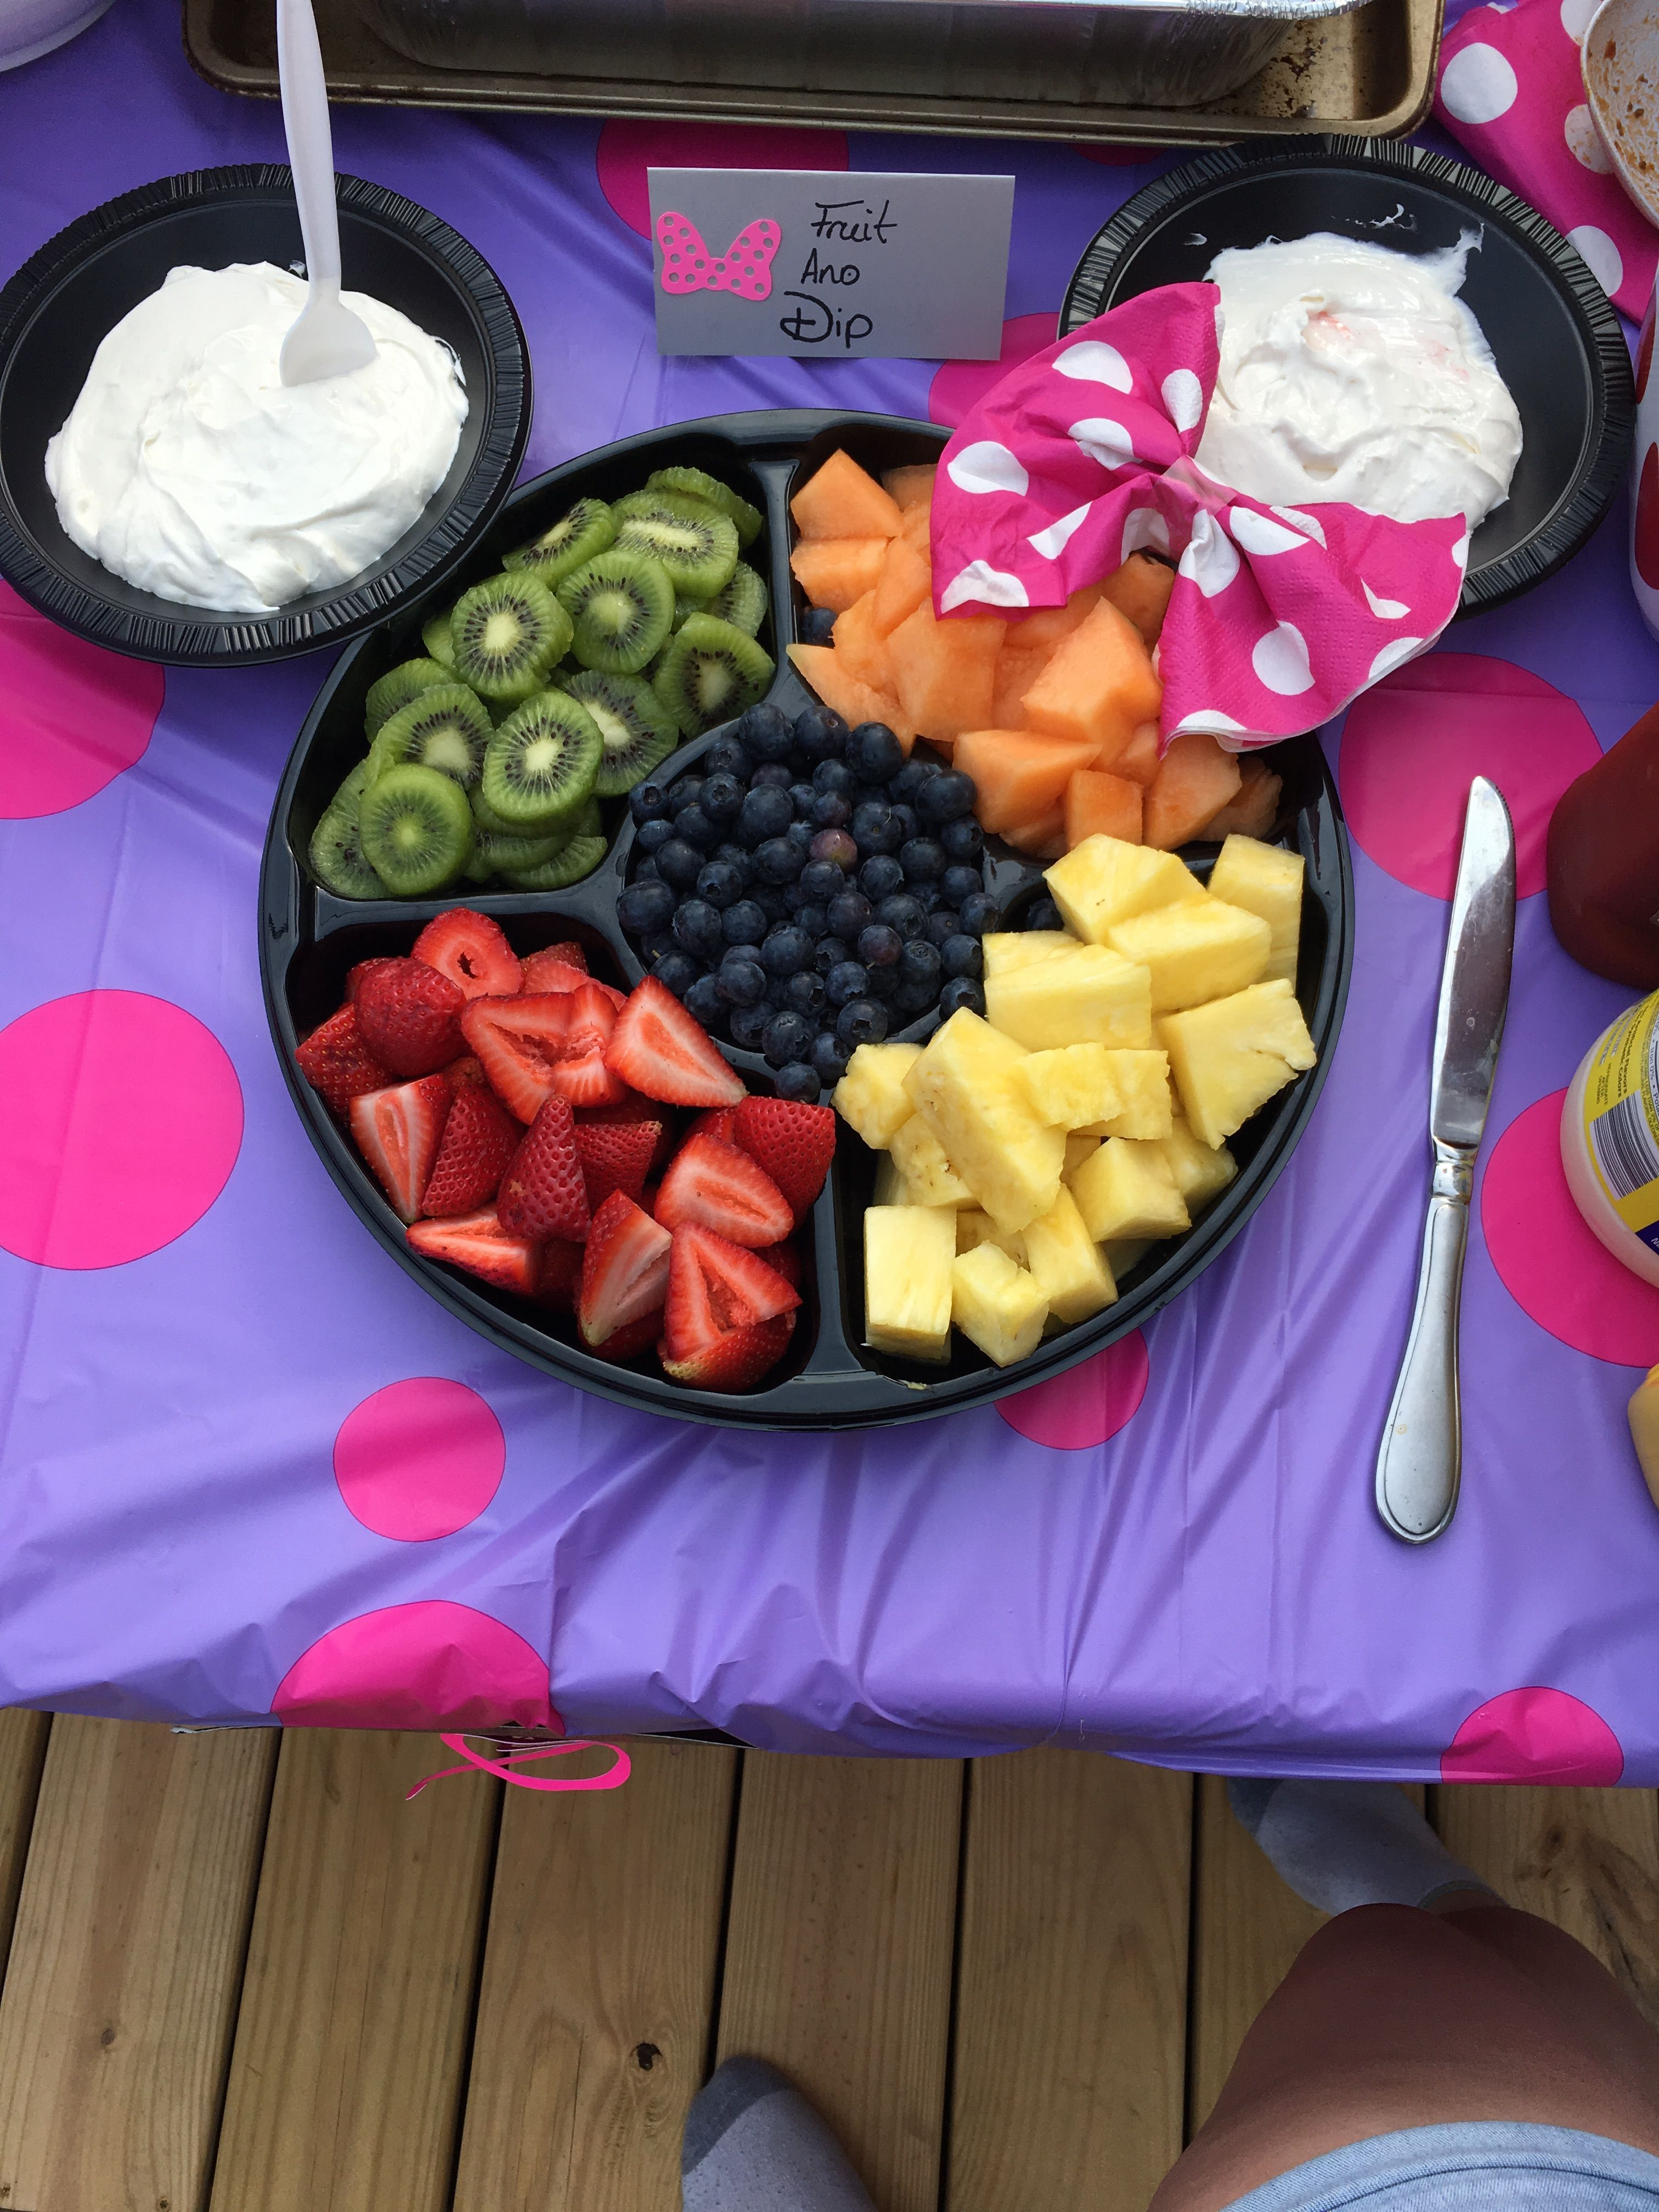 Minnie Mouse fruit tray #mickeymousebirthdaypartyideas1st Minnie Mouse fruit tray #mickeymousebirthdaypartyideas1st